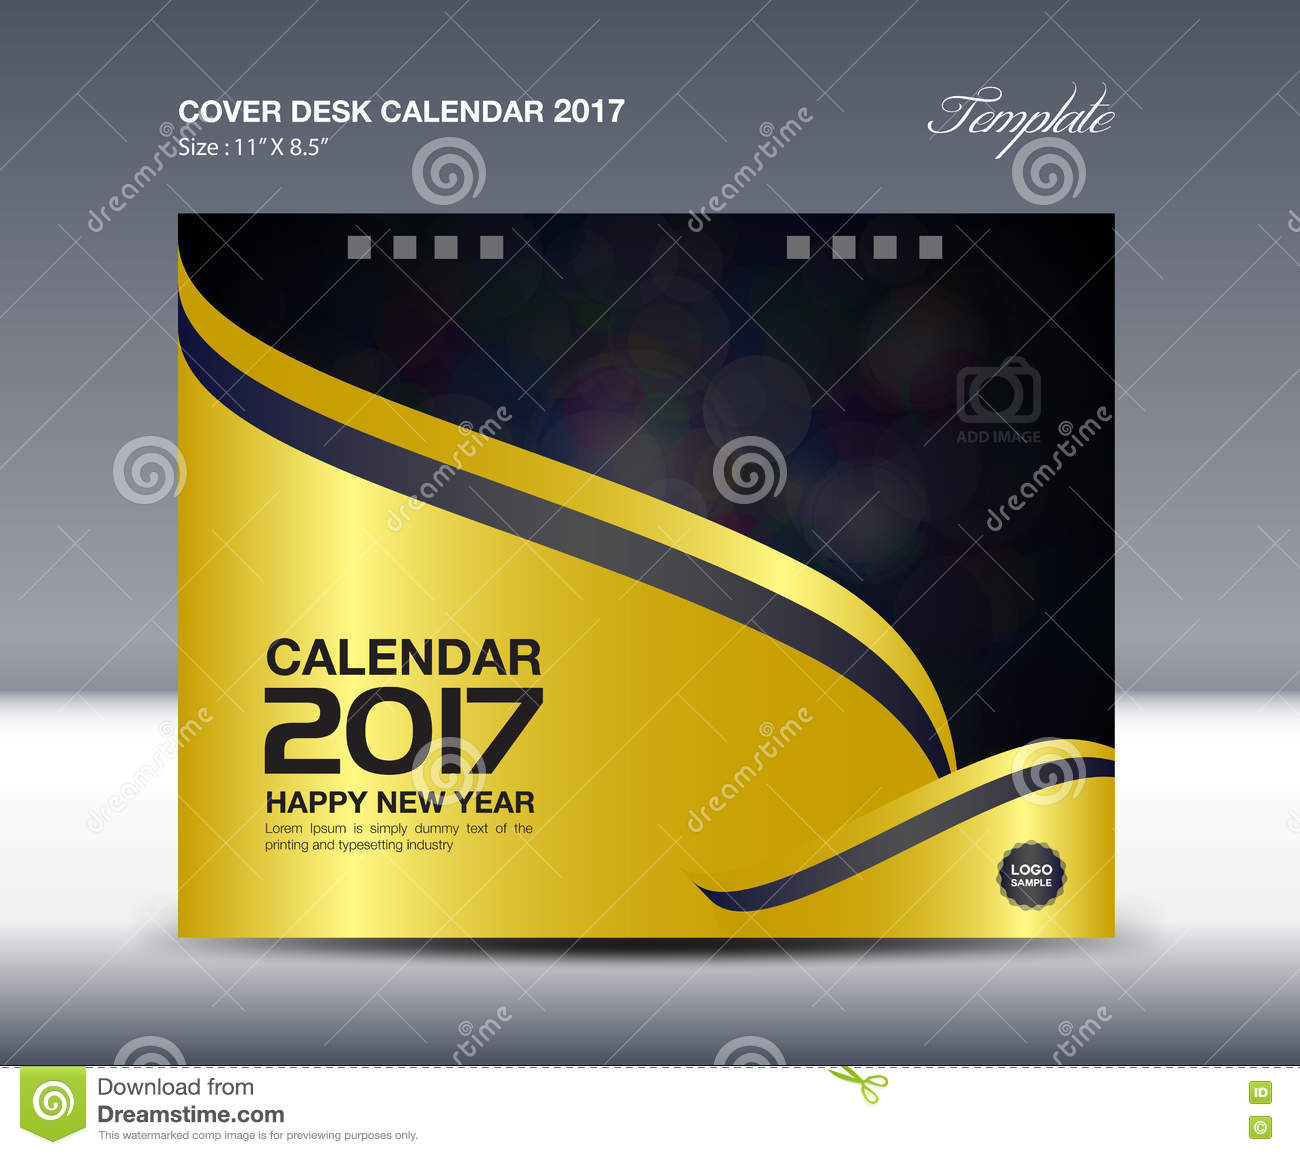 Desk Calendar For 2017 Year, Cover Desk Calendar Template,  Calendar Sample Design